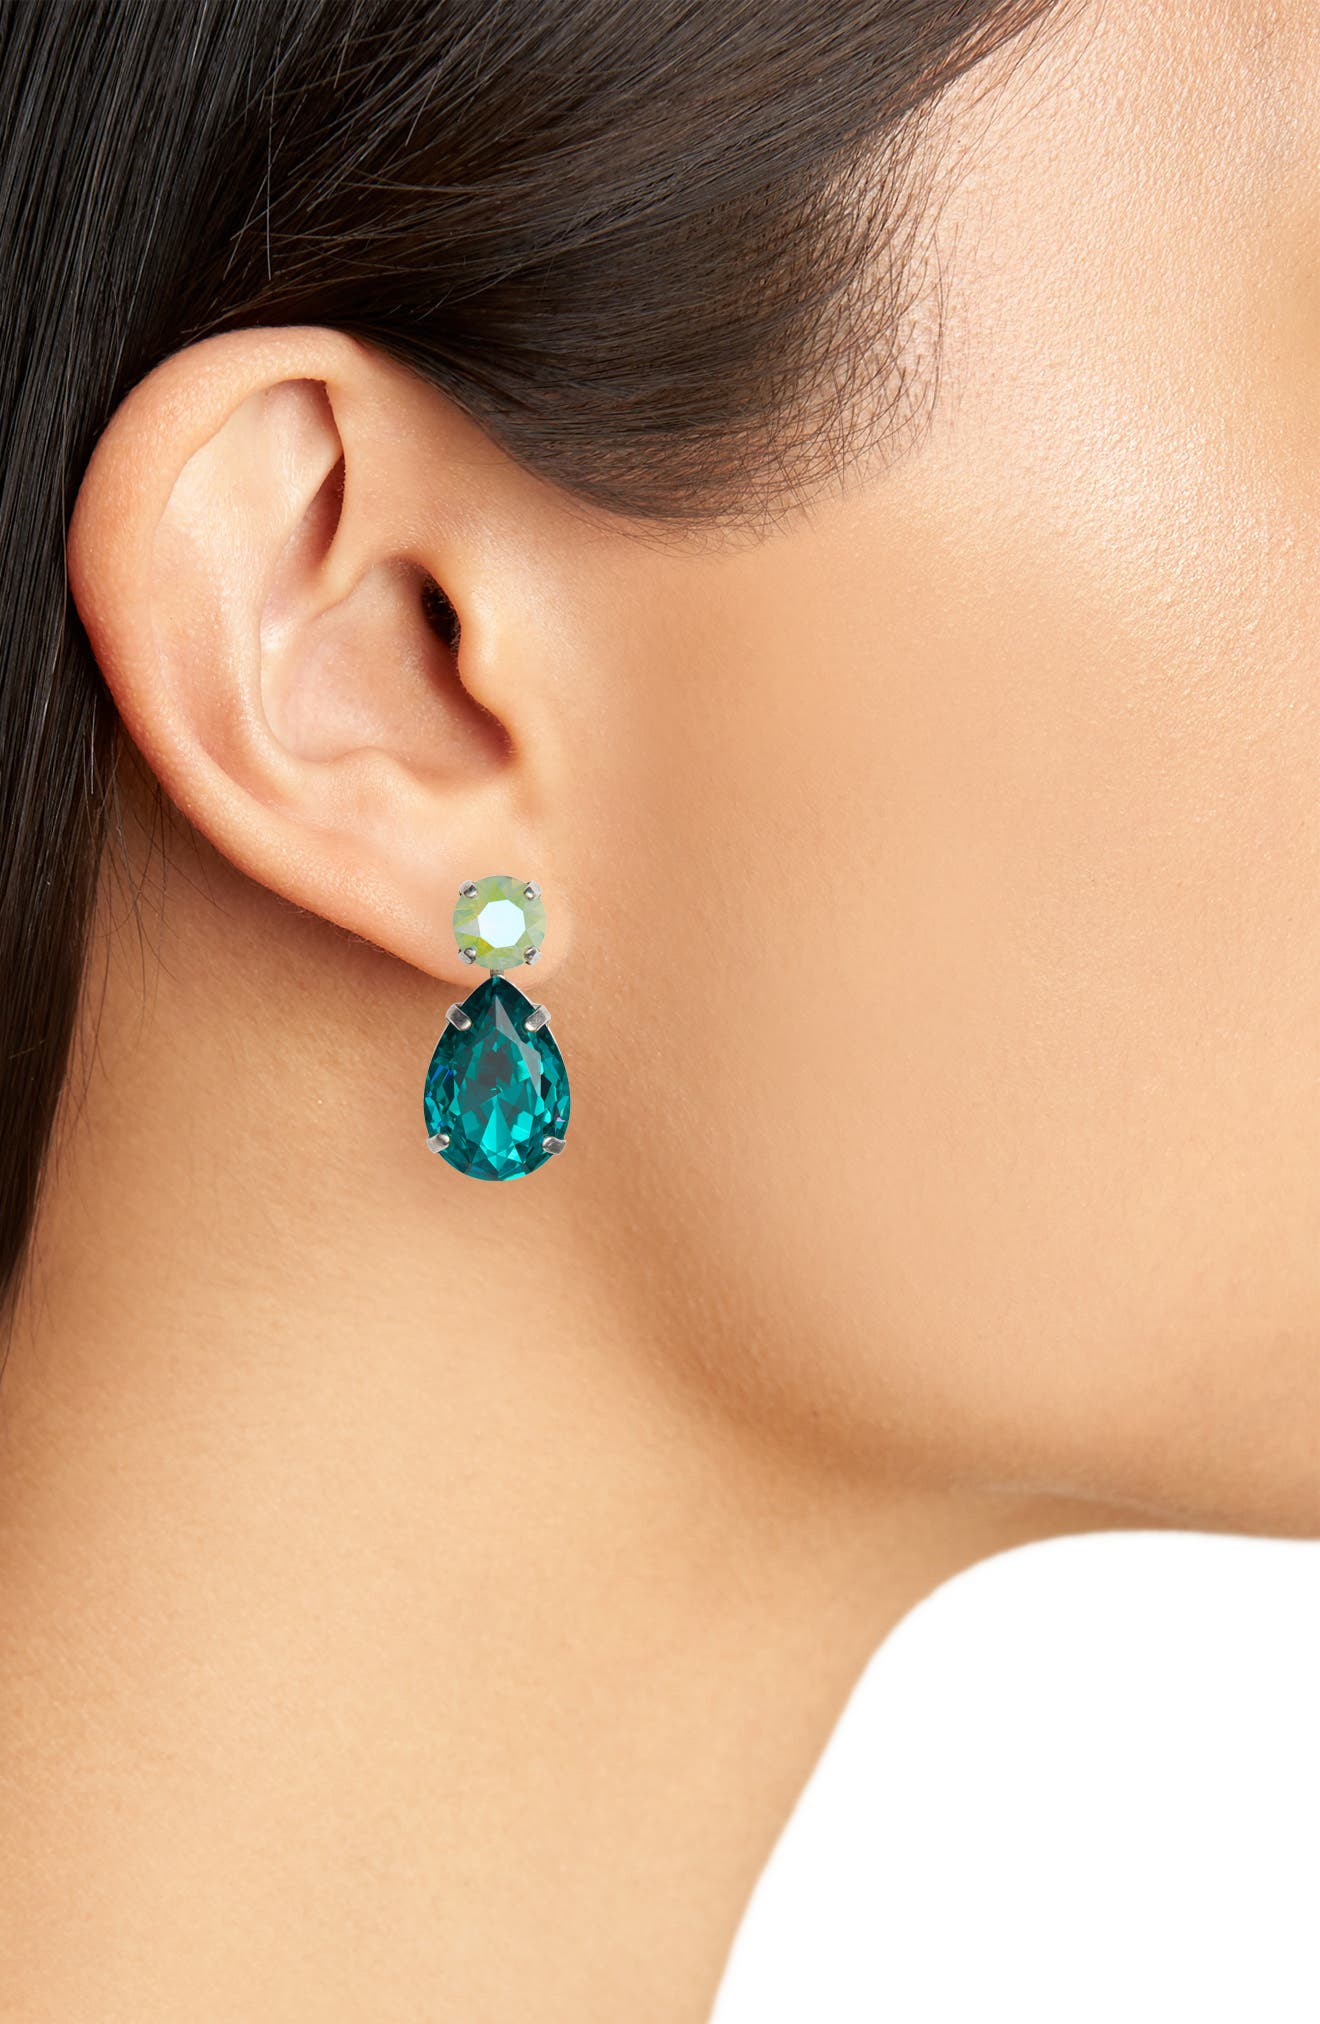 Teardrop Crystal Drop Earrings,                             Alternate thumbnail 2, color,                             Blue-Green